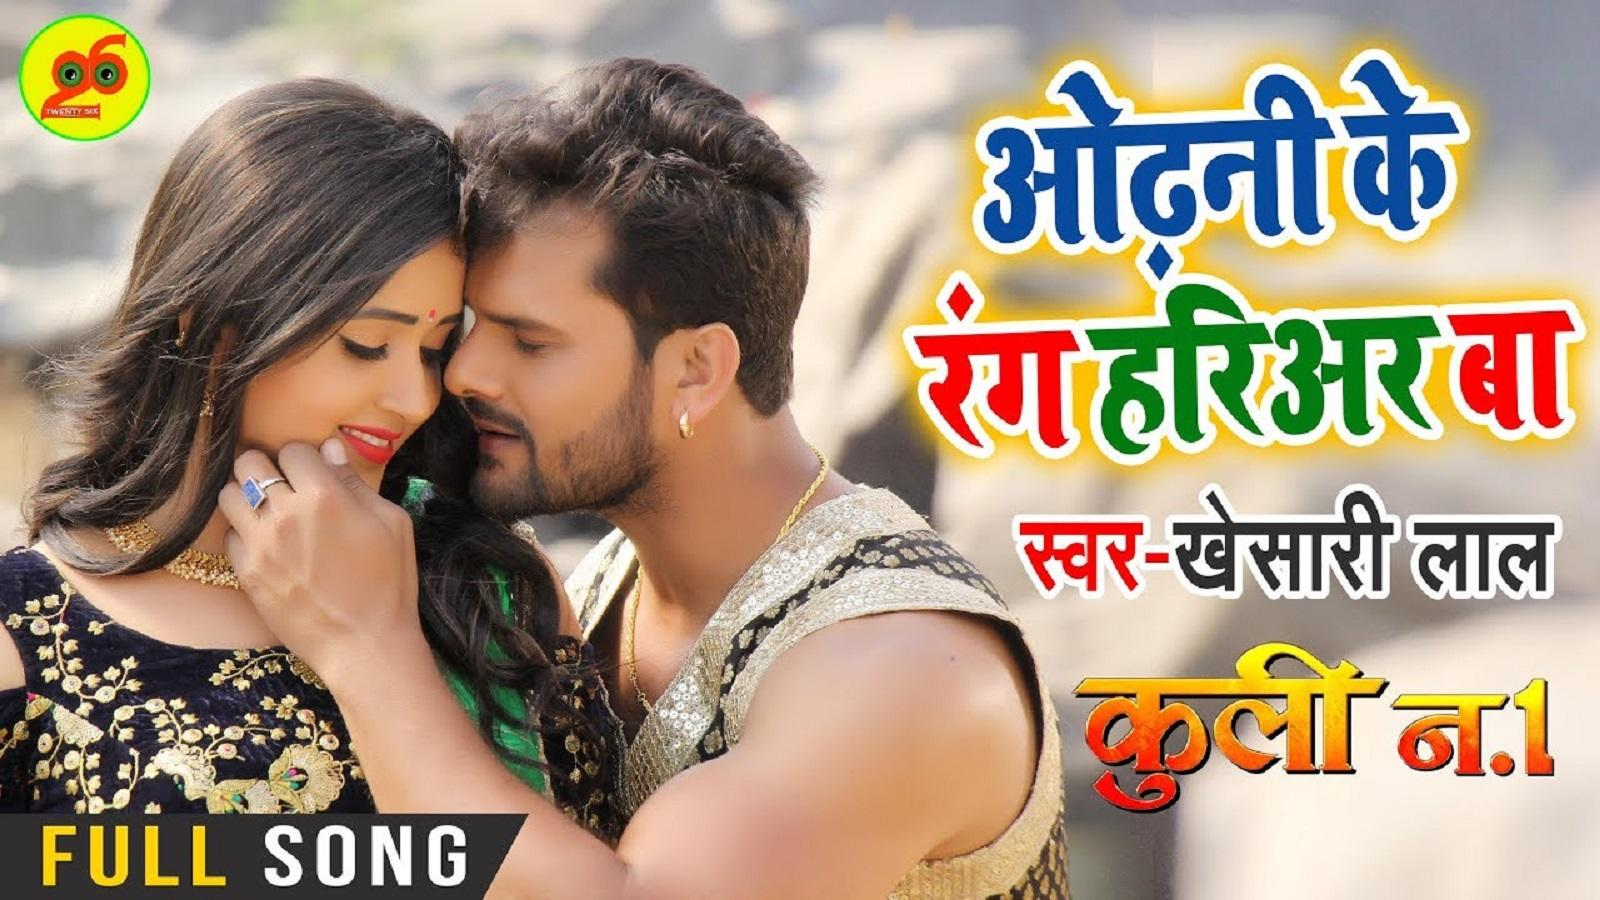 Odhani ke rang hariyar ba mp3 song download